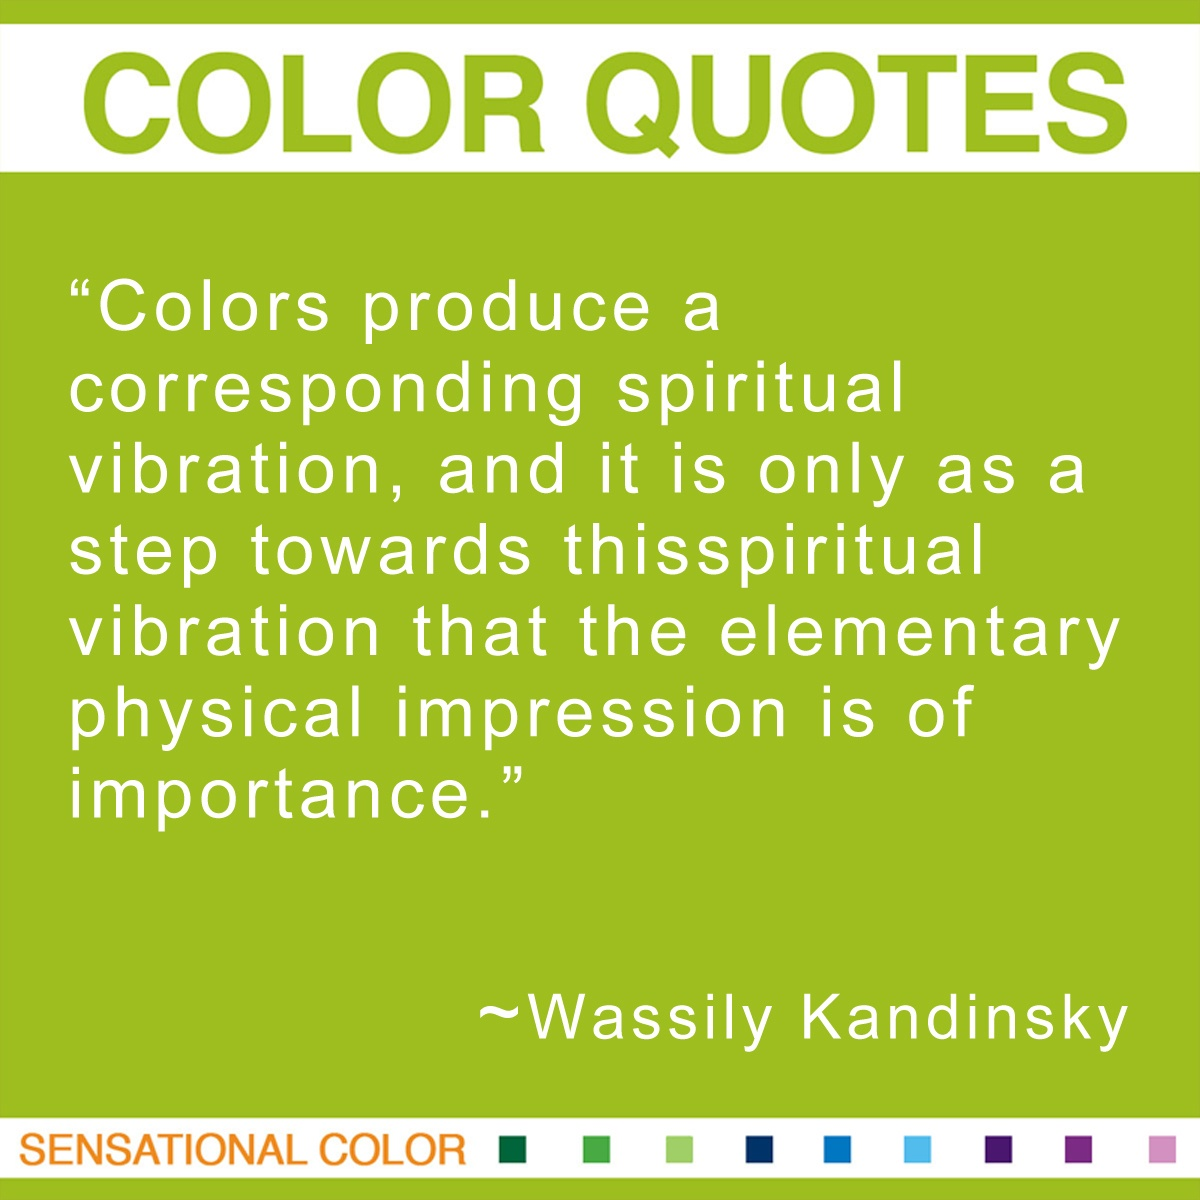 """Colors produce a corresponding spiritual vibration, and it is only as a step towards this spiritual vibration that the elementary physical impression is of importance."" - Wassily Kandinsky"